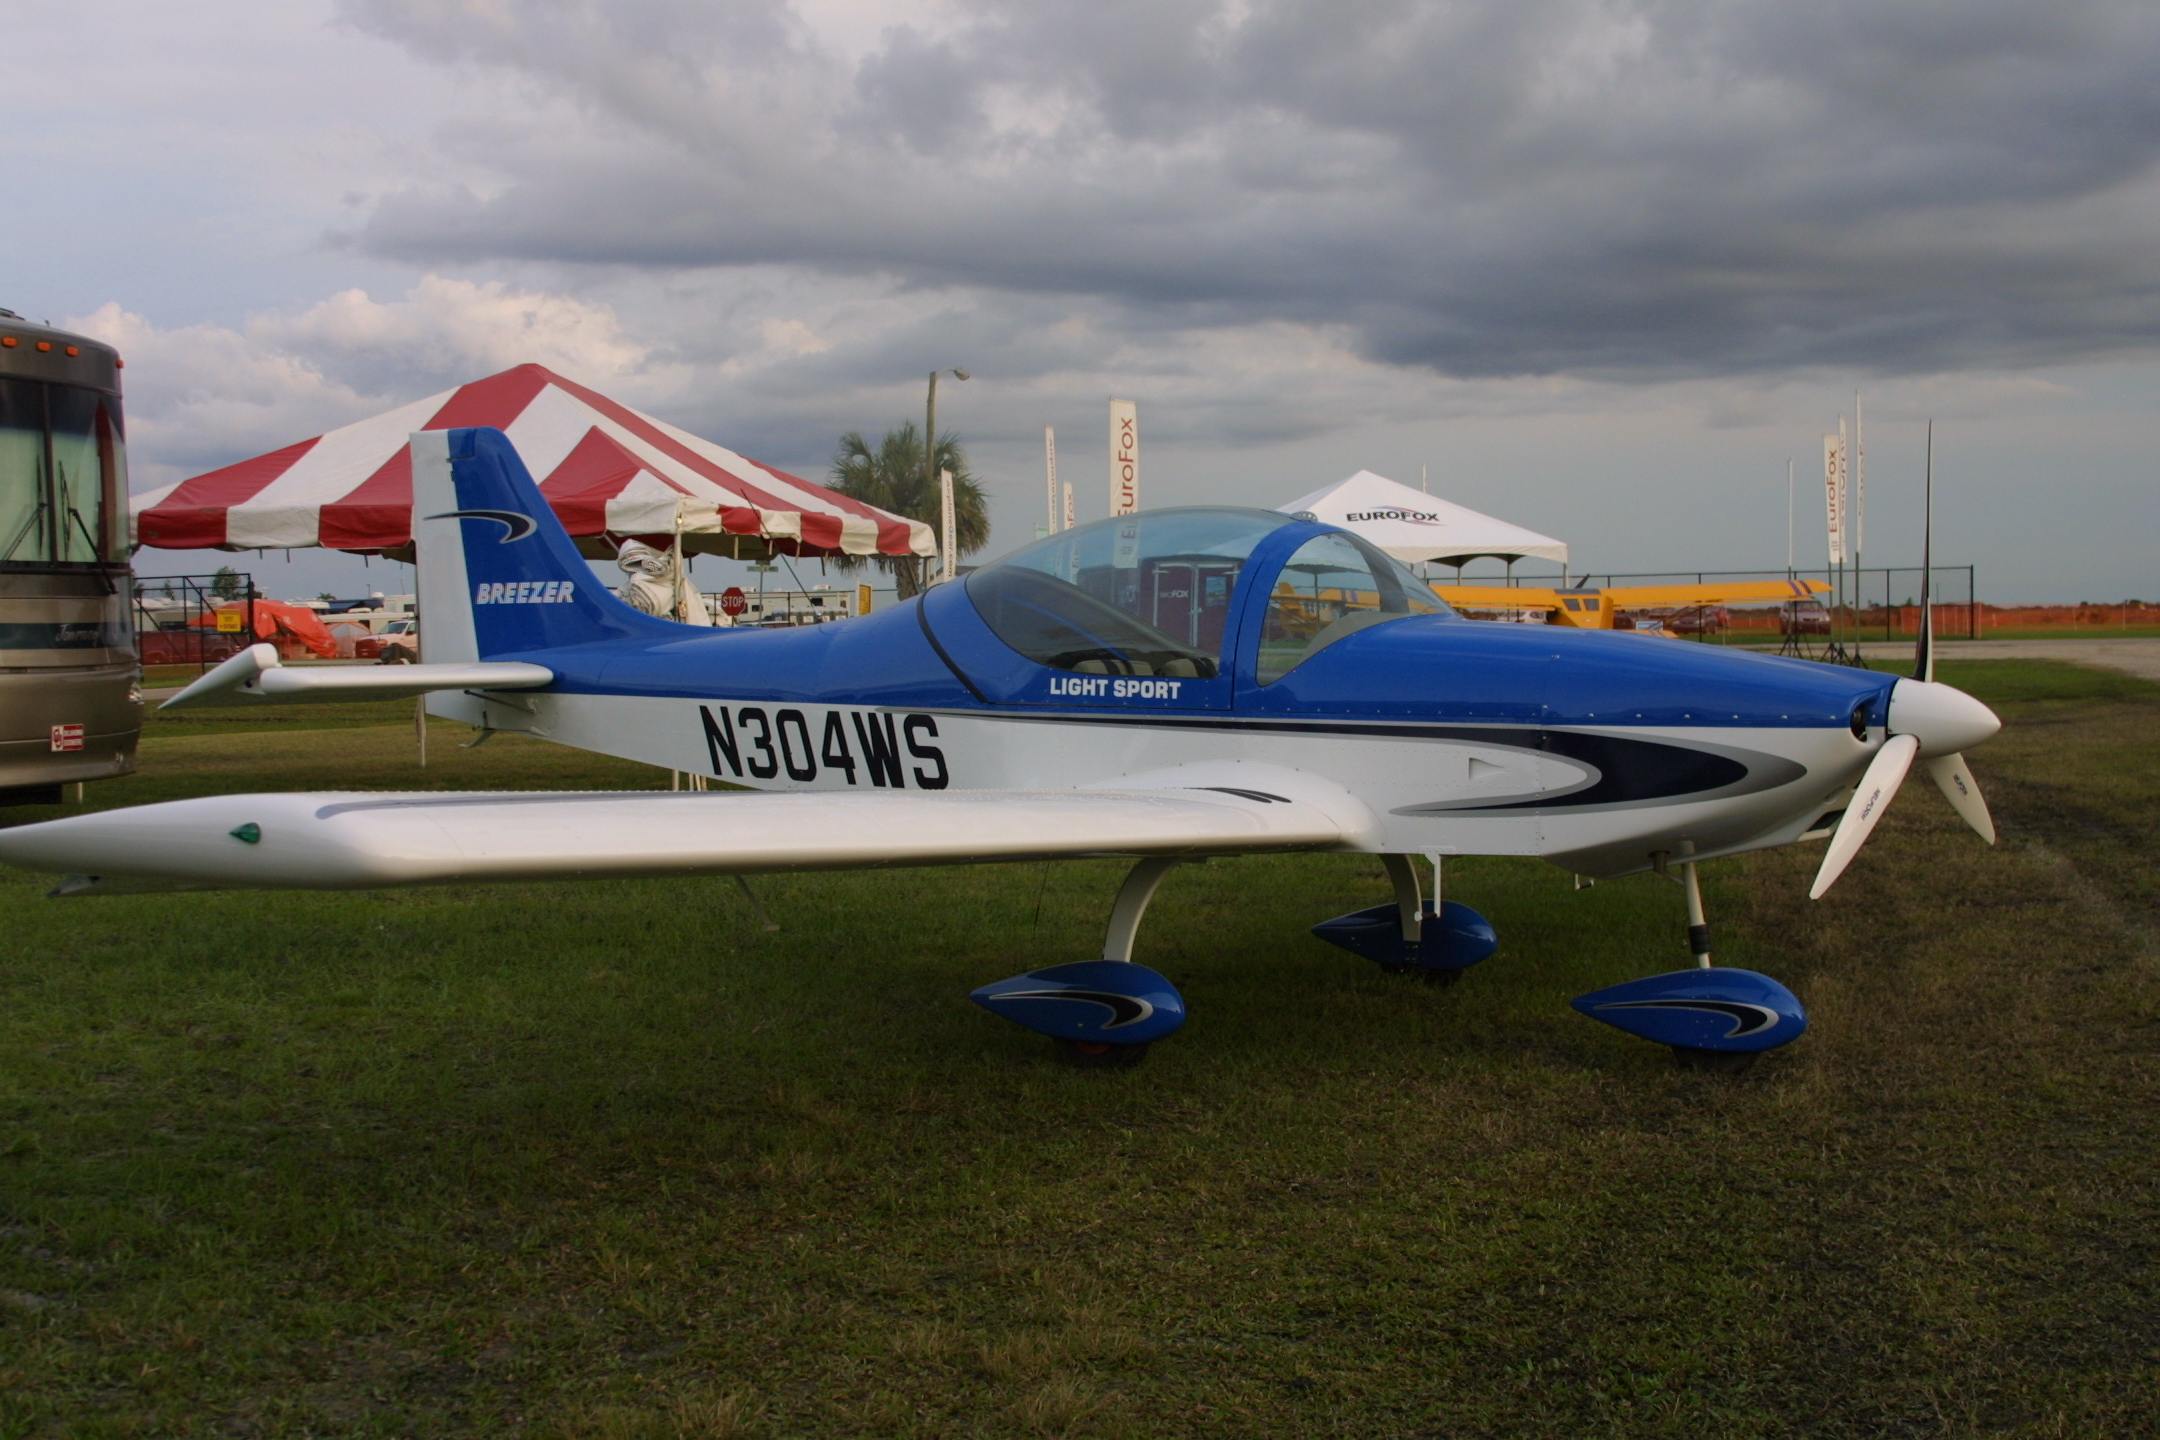 Breezer II, Breezer II lightsport aircraft